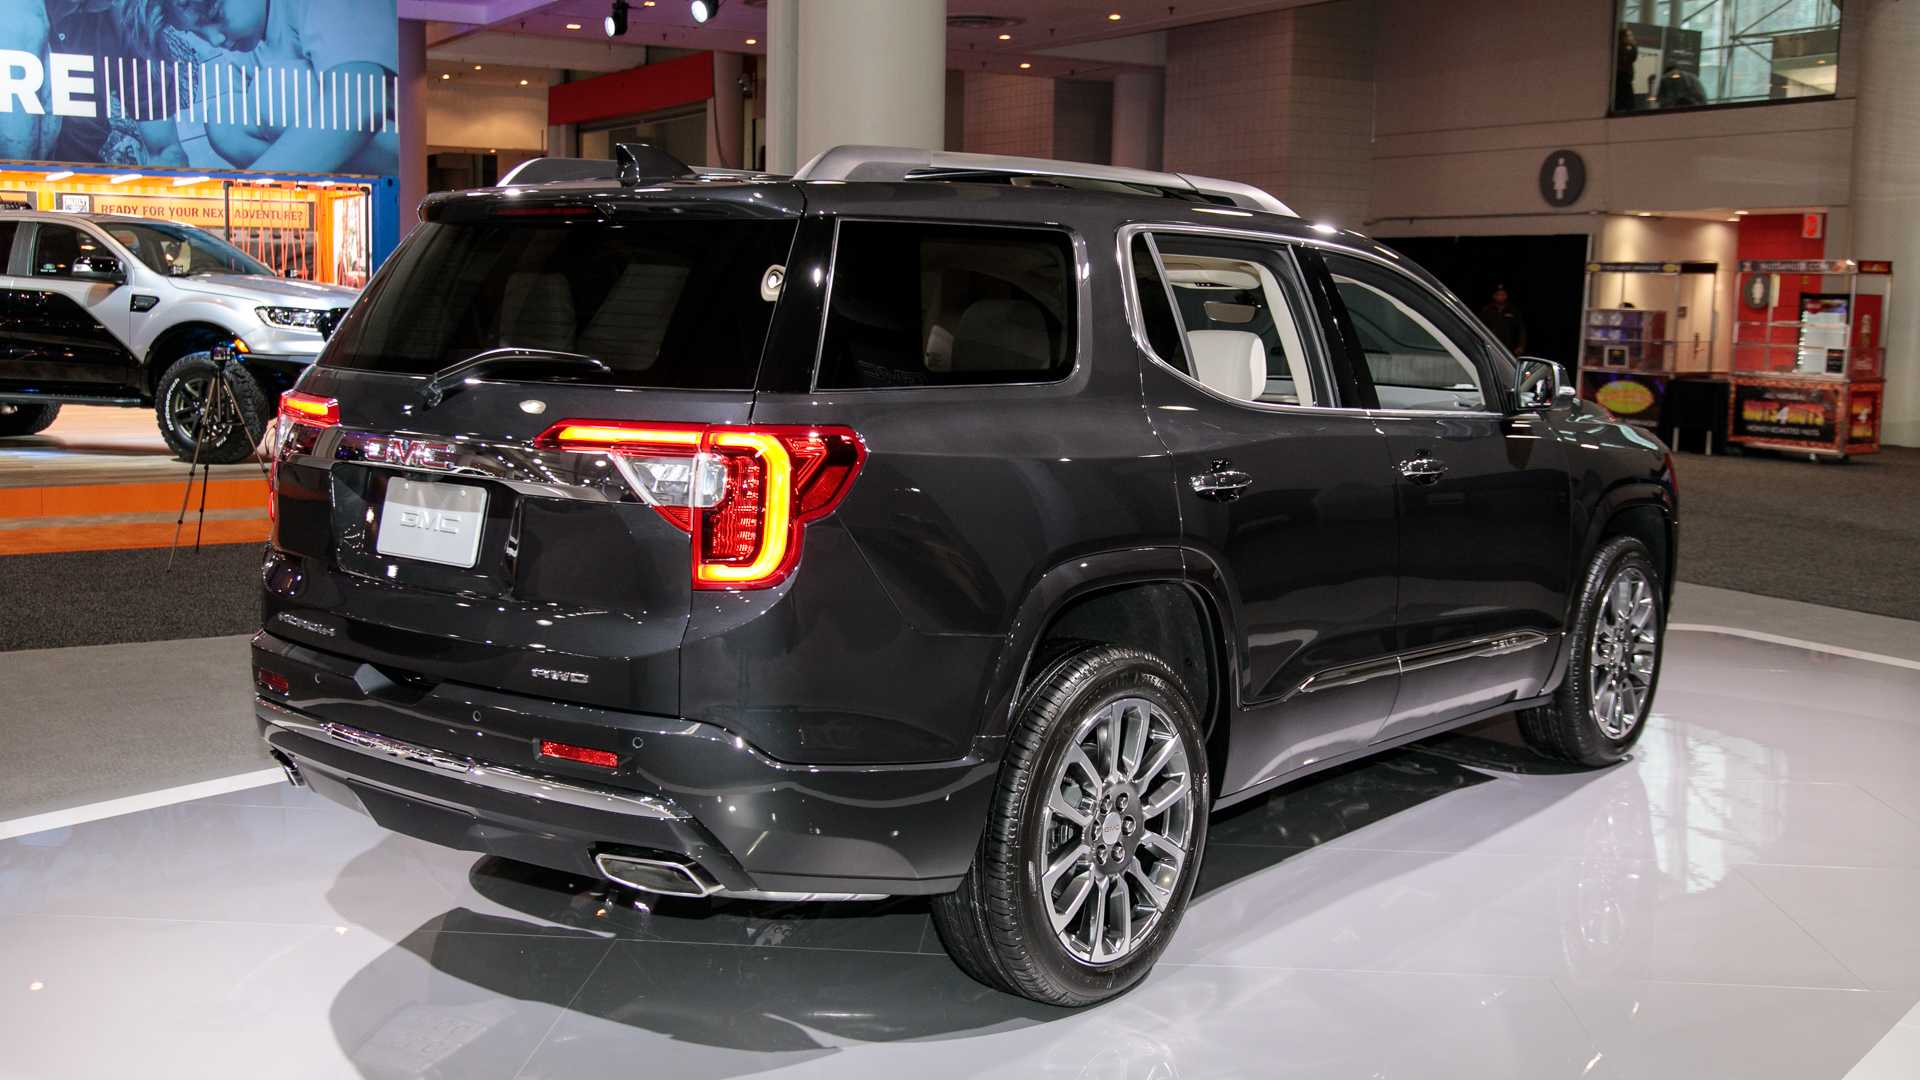 2020-gmc-acadia-live-photos-4.jpg